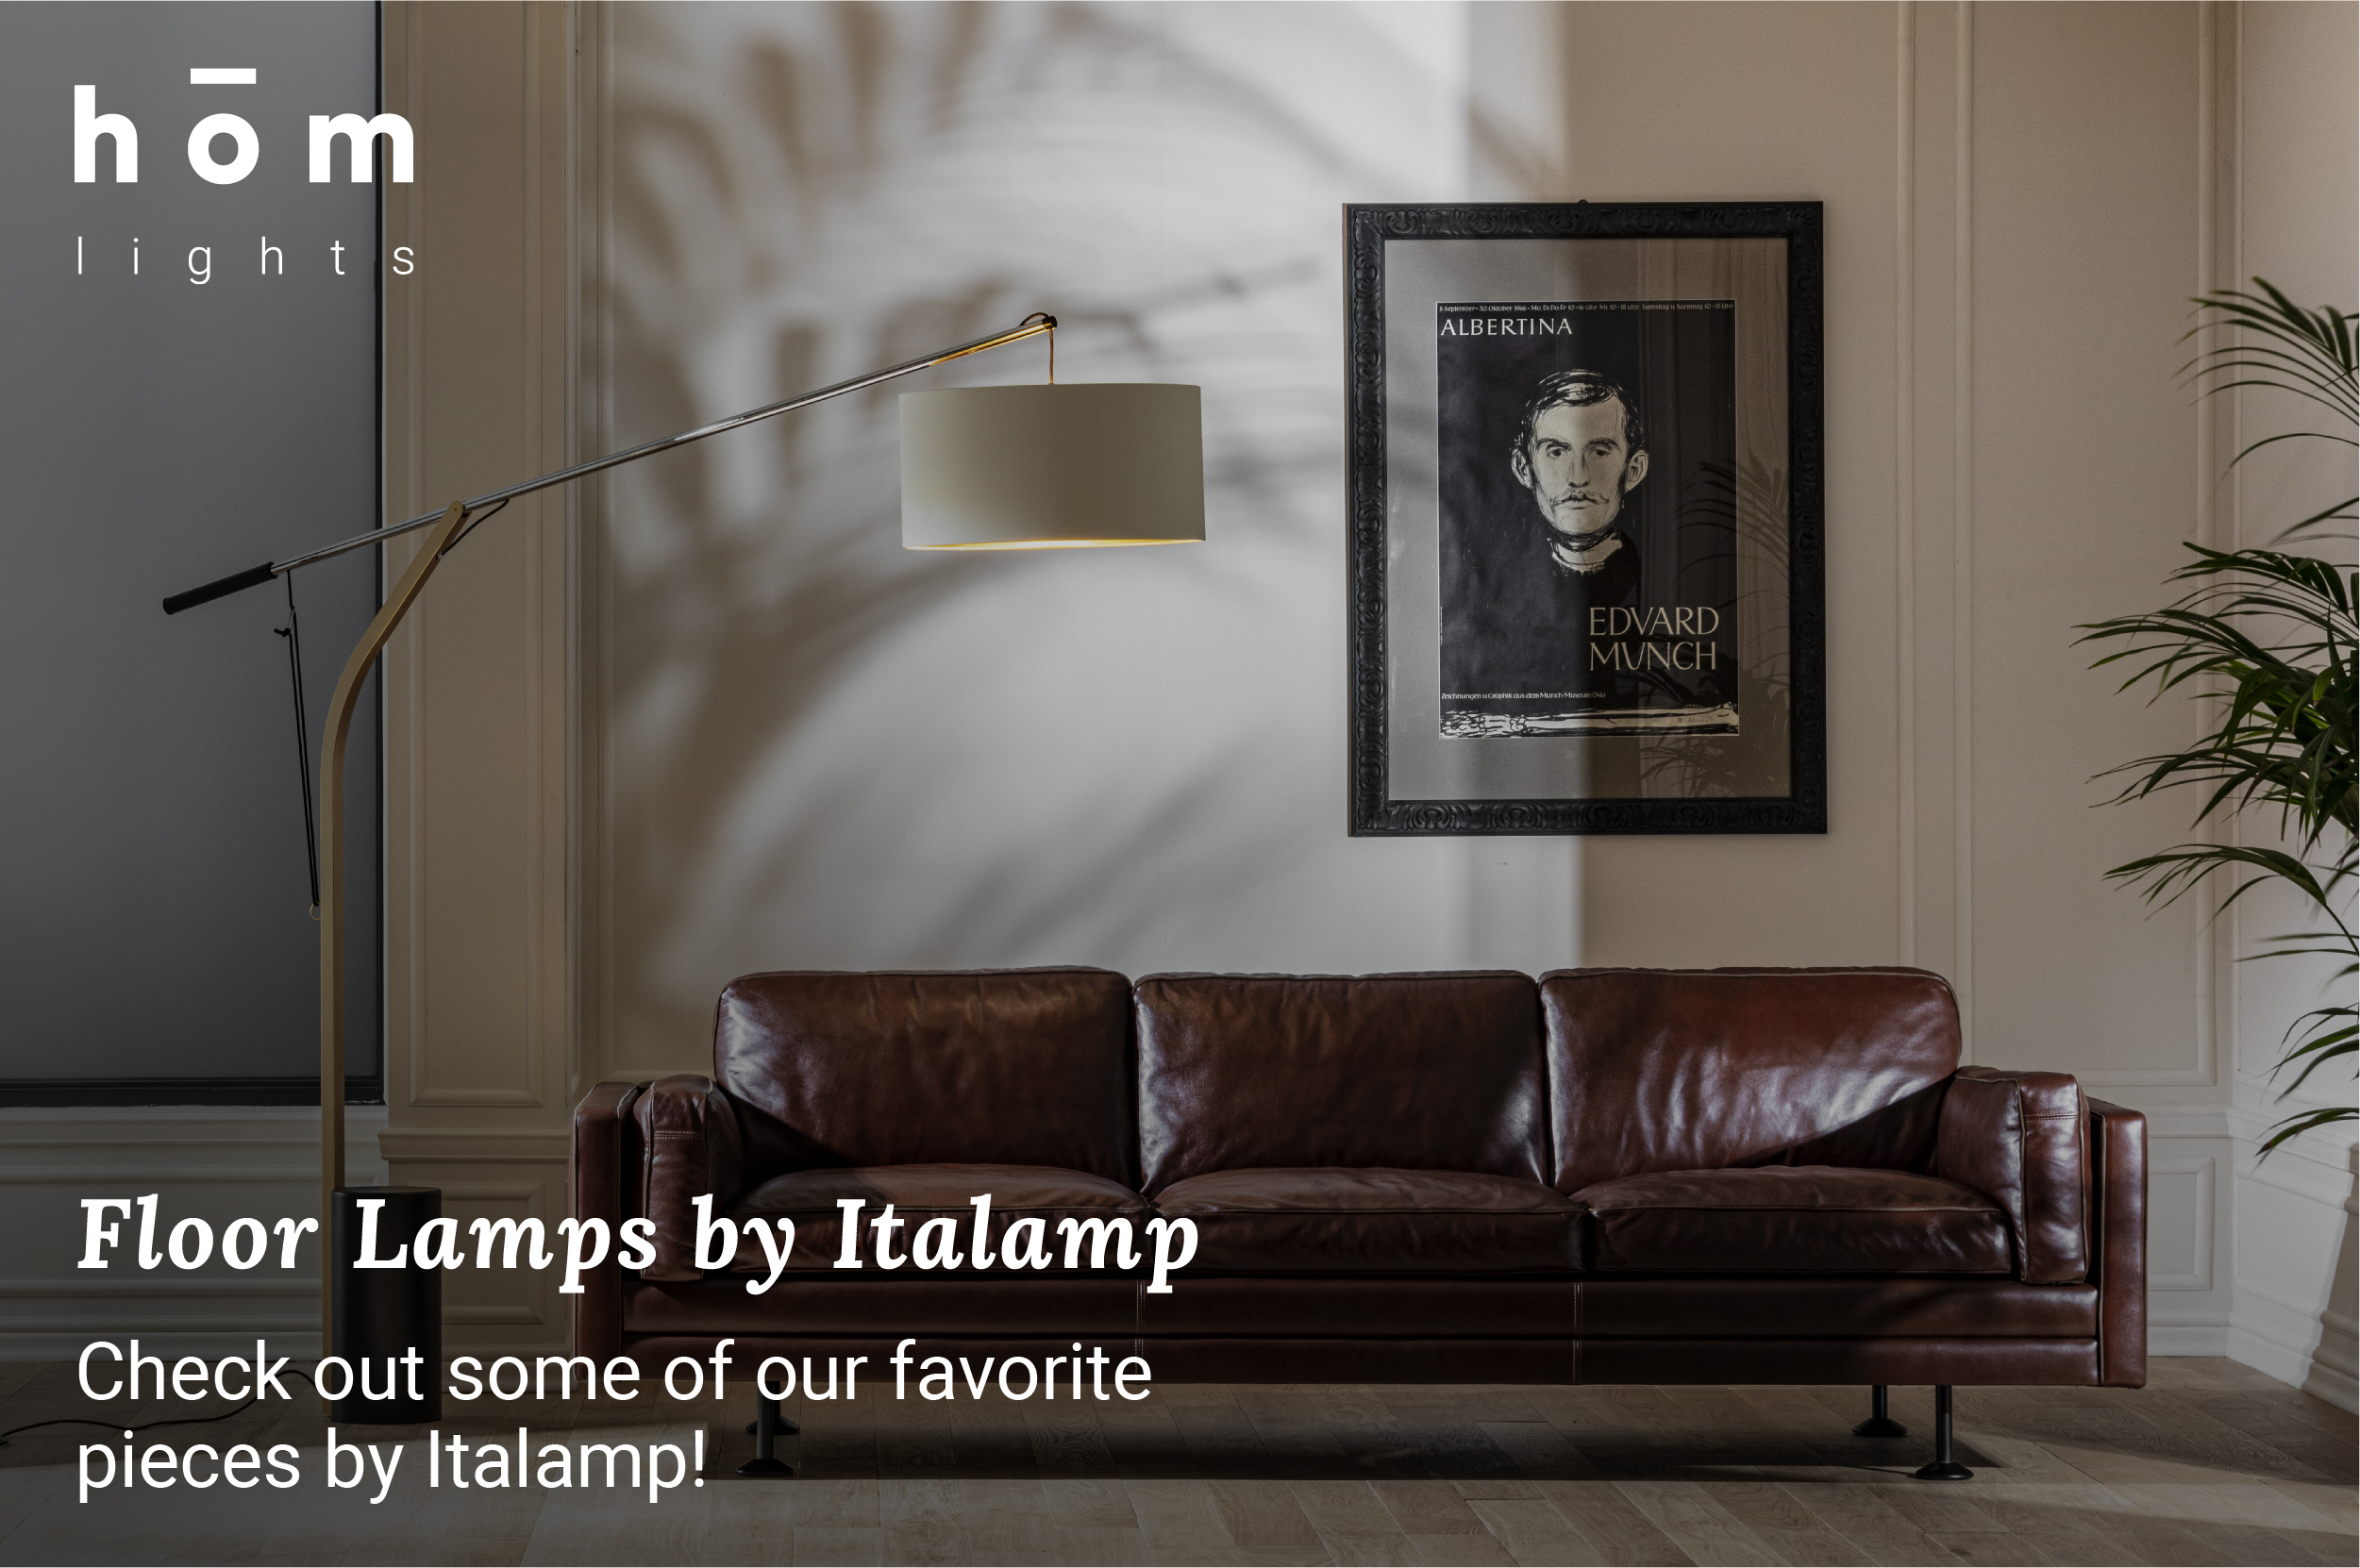 Floor Lamps by Italamp - available at homkw.com